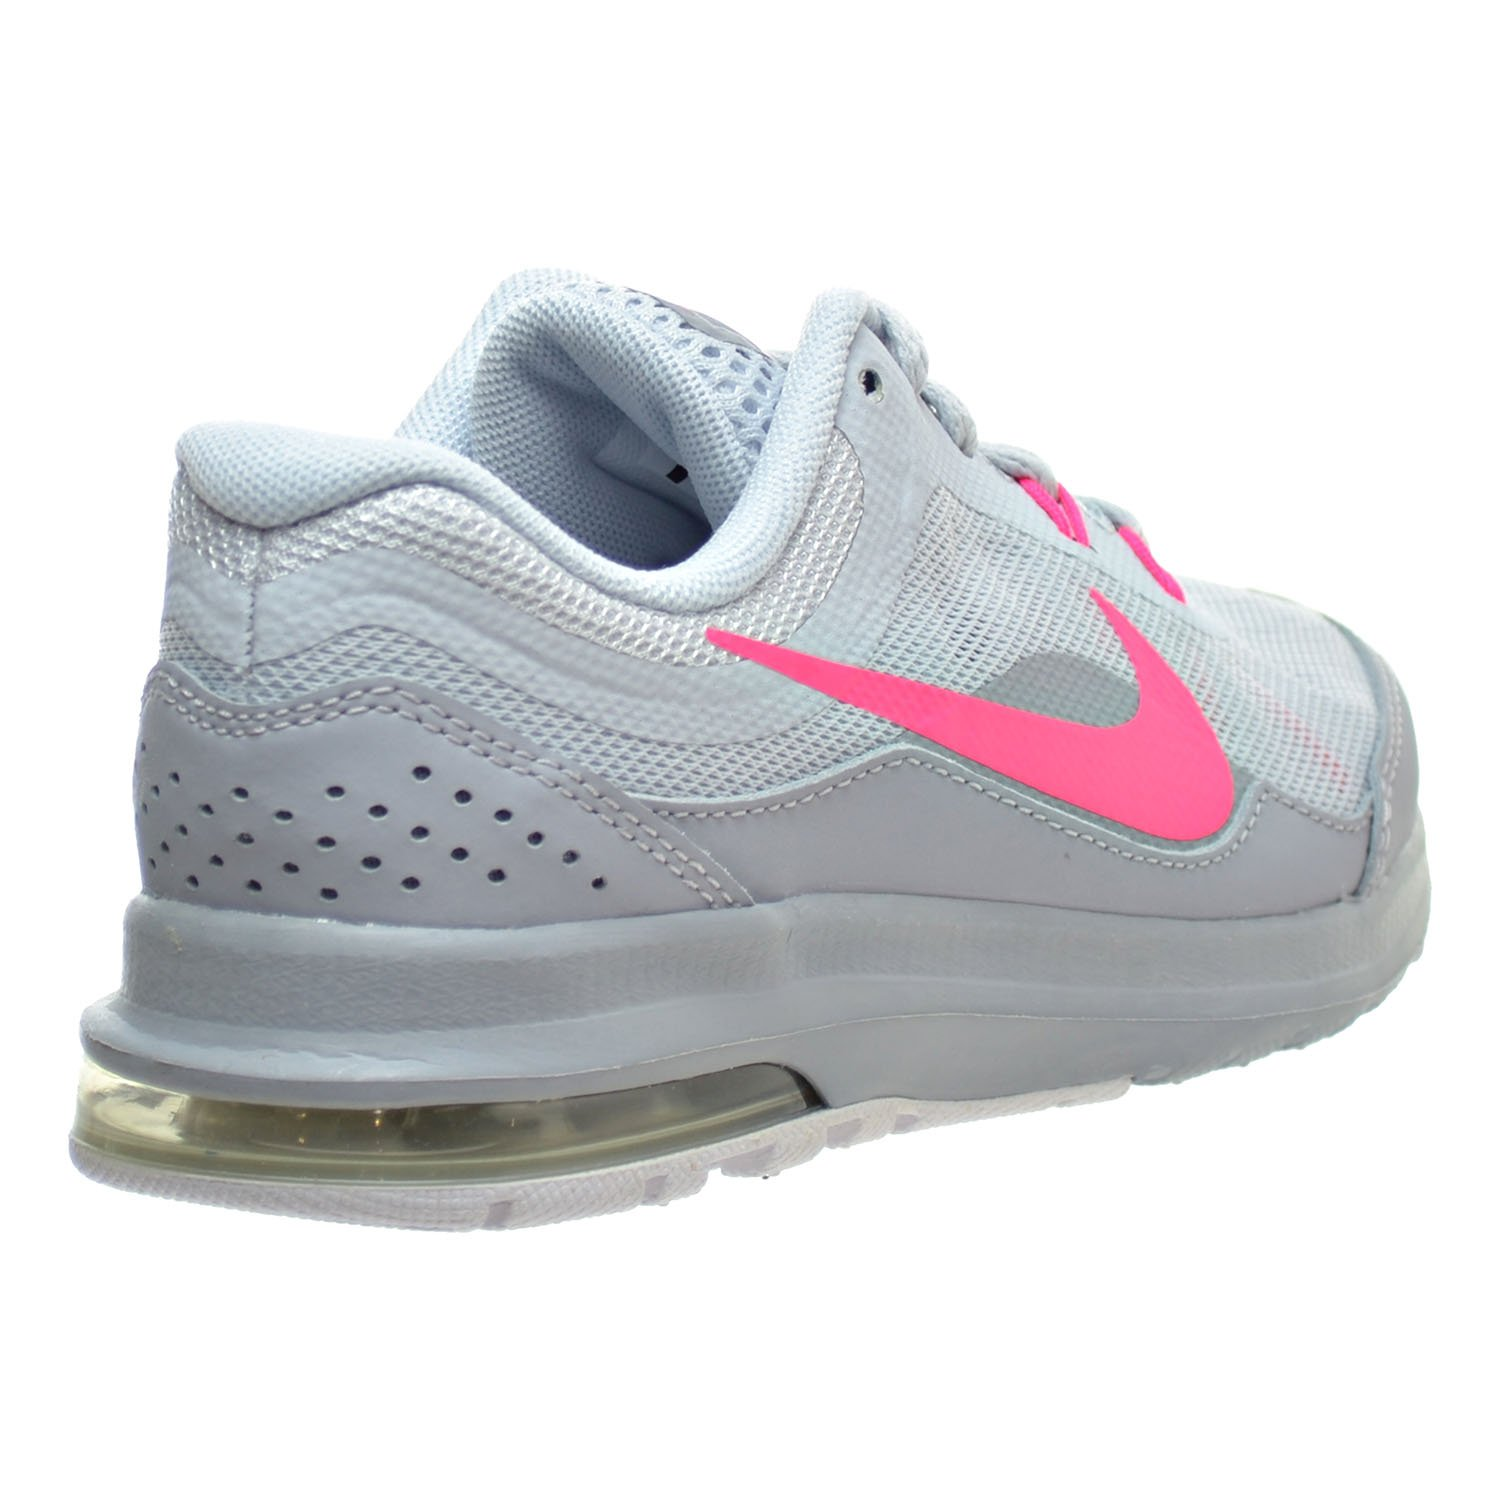 competitive price 9d201 fe2c9 Amazon.com   Nike Air Max Dynasty 2 (PS) Little Kid s Shoes Pure Platinum Hyper  Pink 859578-001   Sneakers